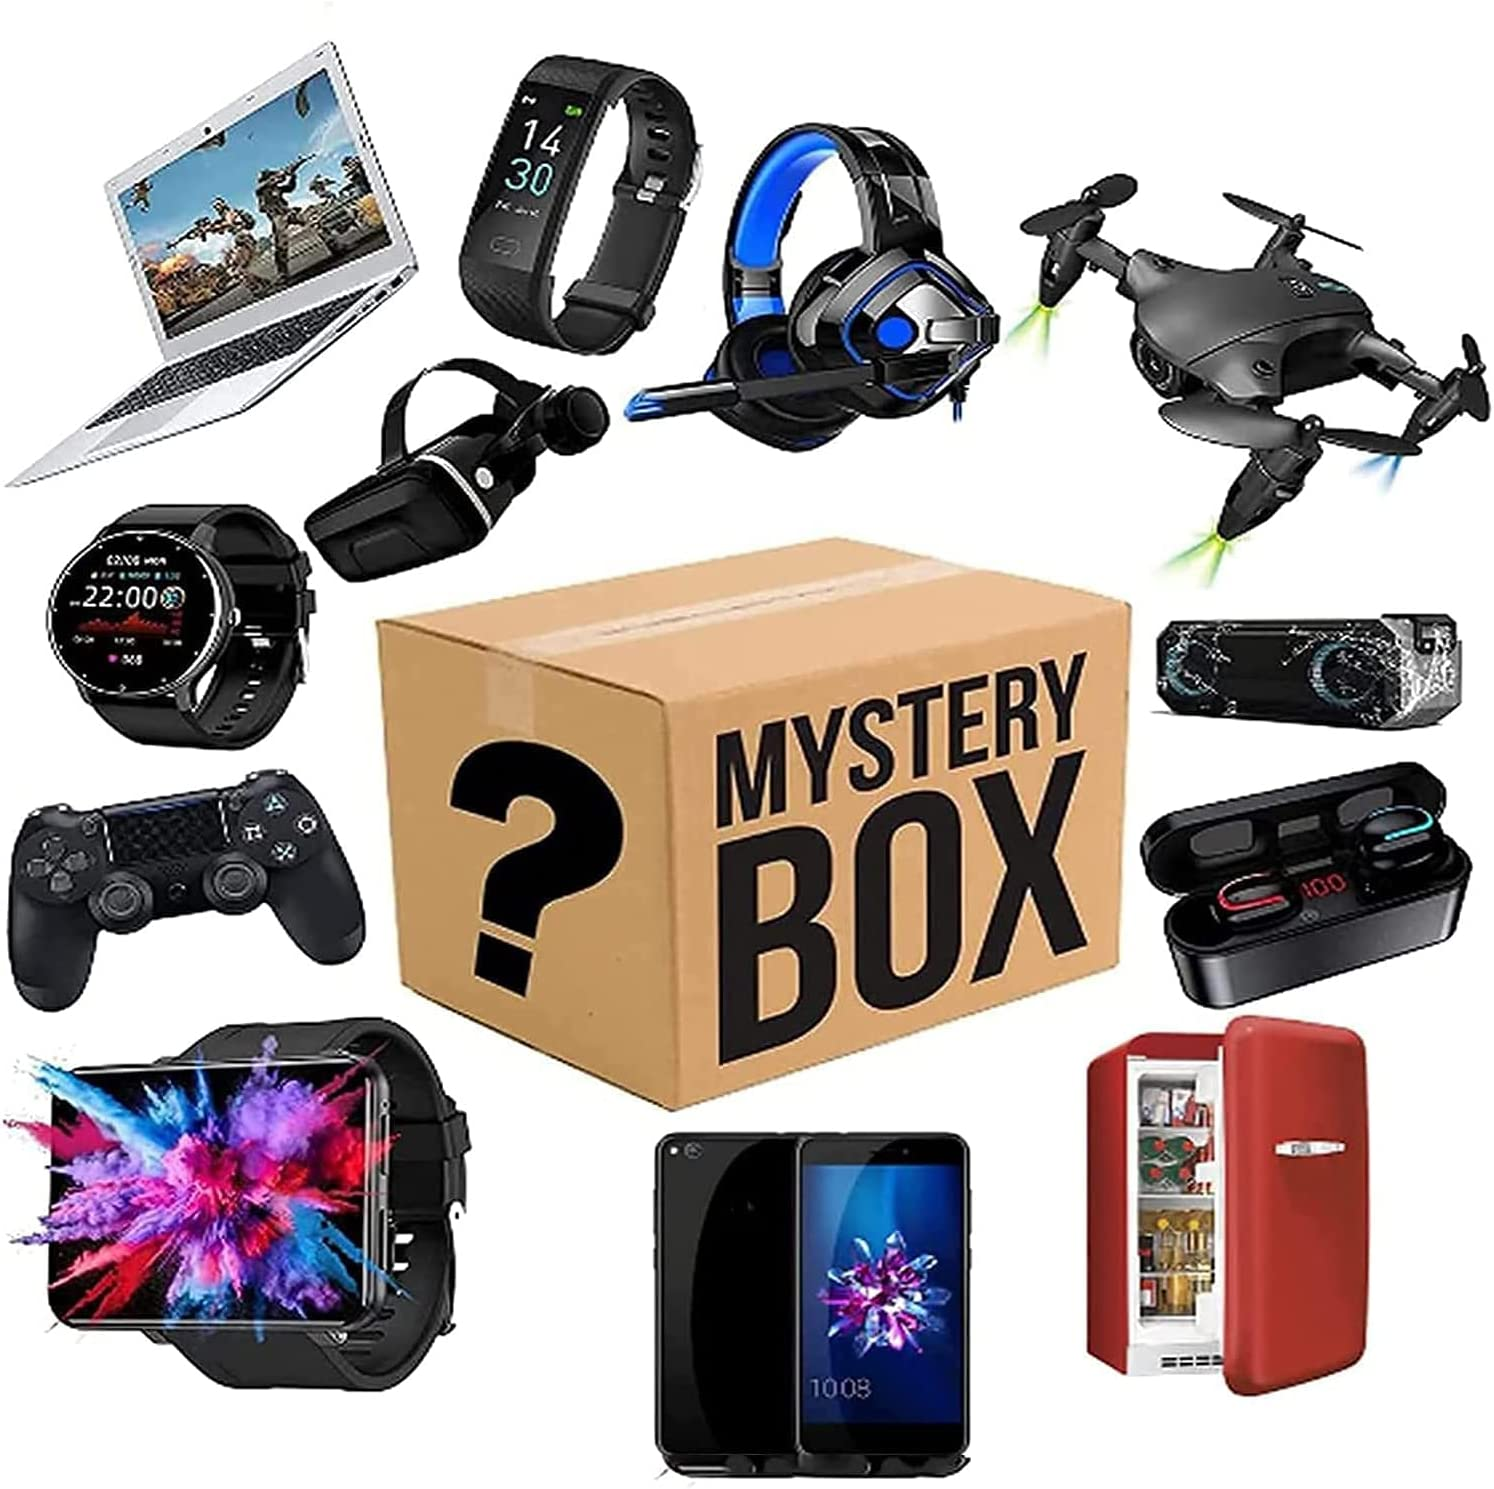 Mystery Lucky Box Mysteries Boxes Electronic is Abou Game a This Challenge Ranking TOP12 the lowest price